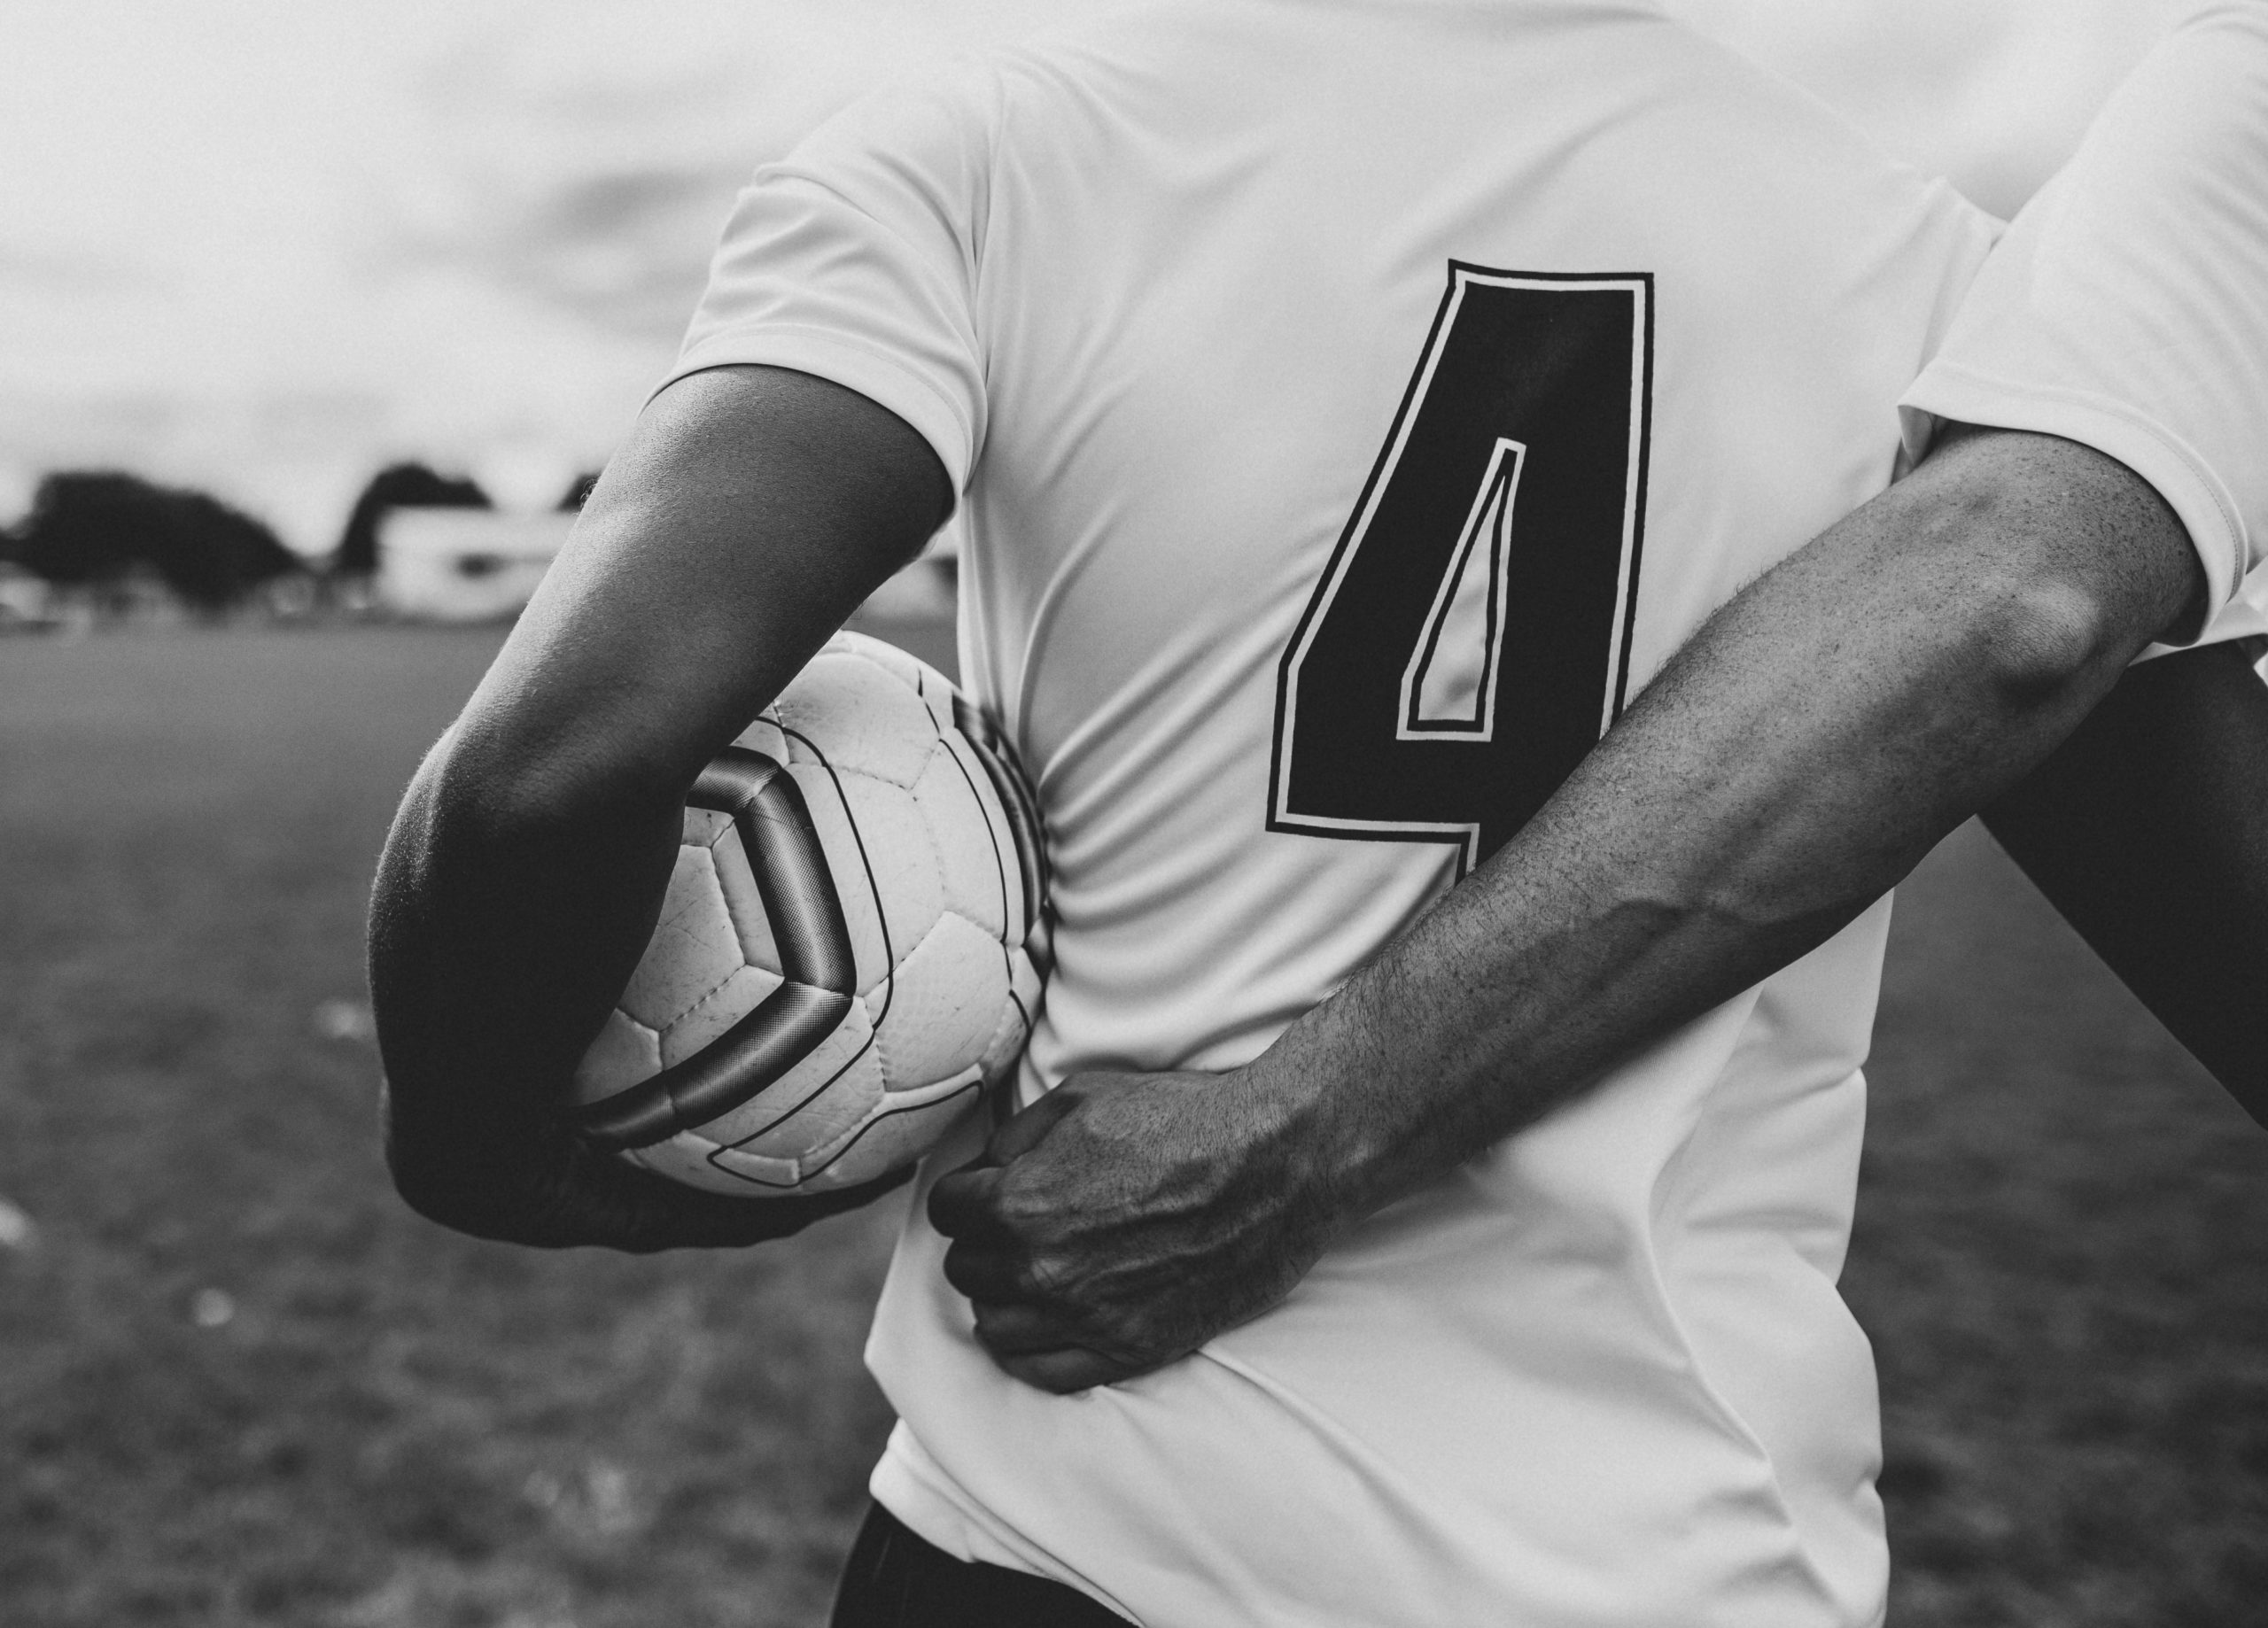 Black and white photo of athletes walking arm in arm with a soccer ball.